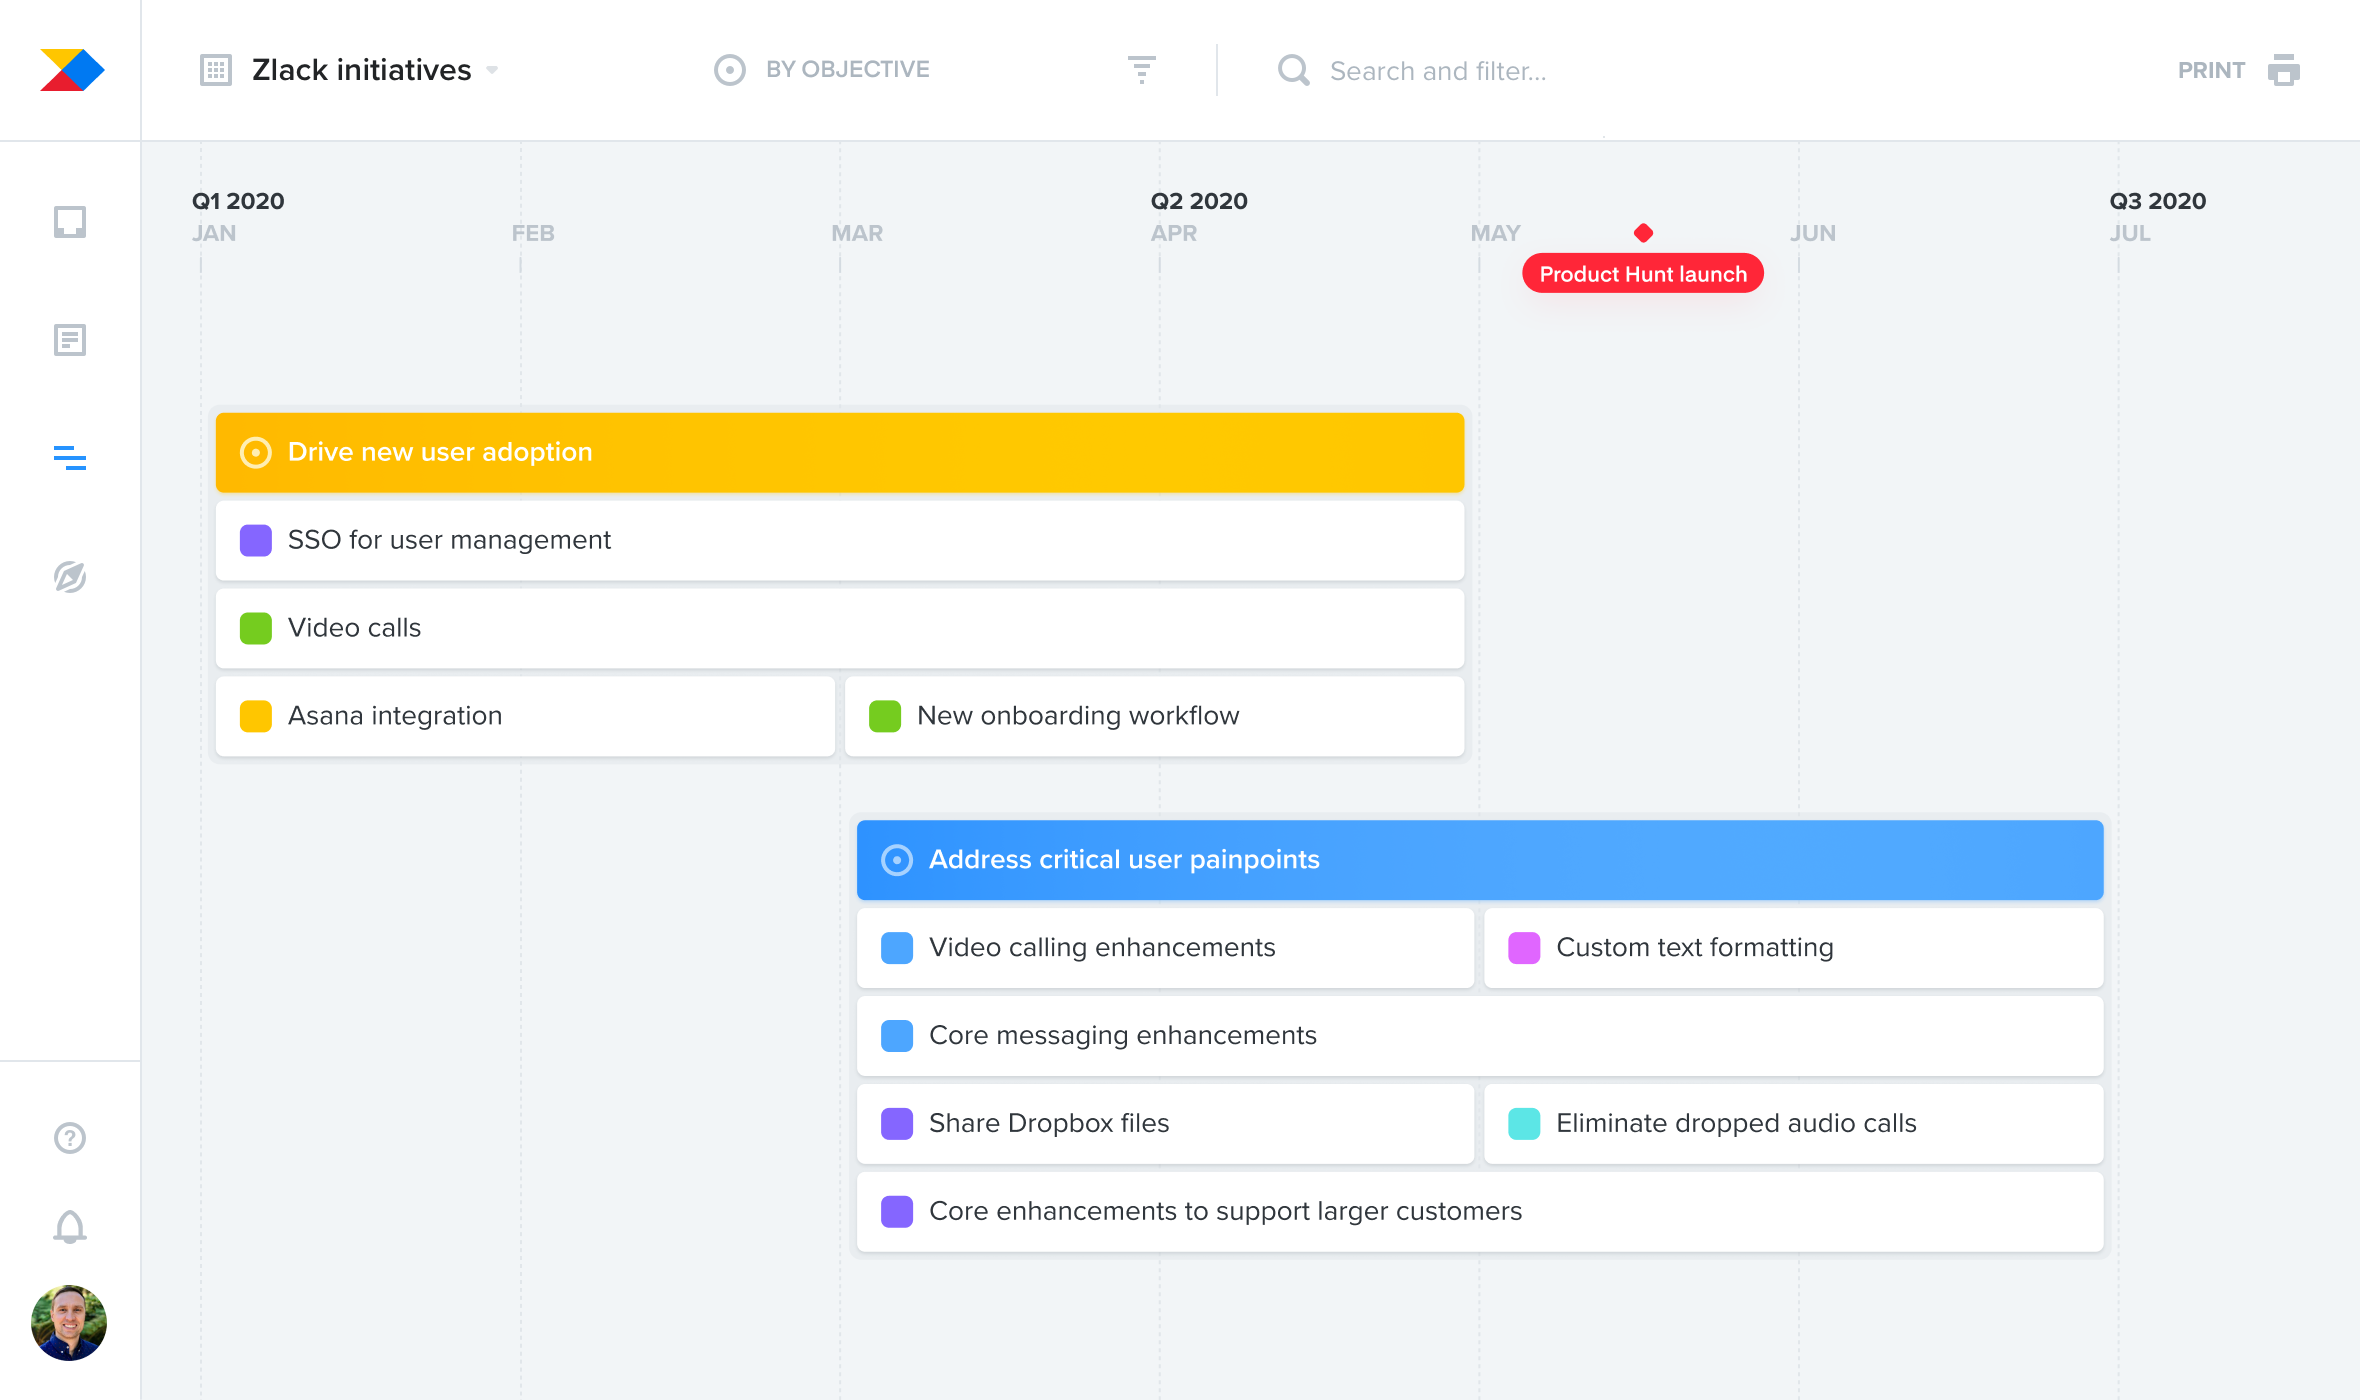 Create timeline roadmaps to plan work in relation to upcoming date-based milestones like a major industry conference, analyst briefing, or marketing launch